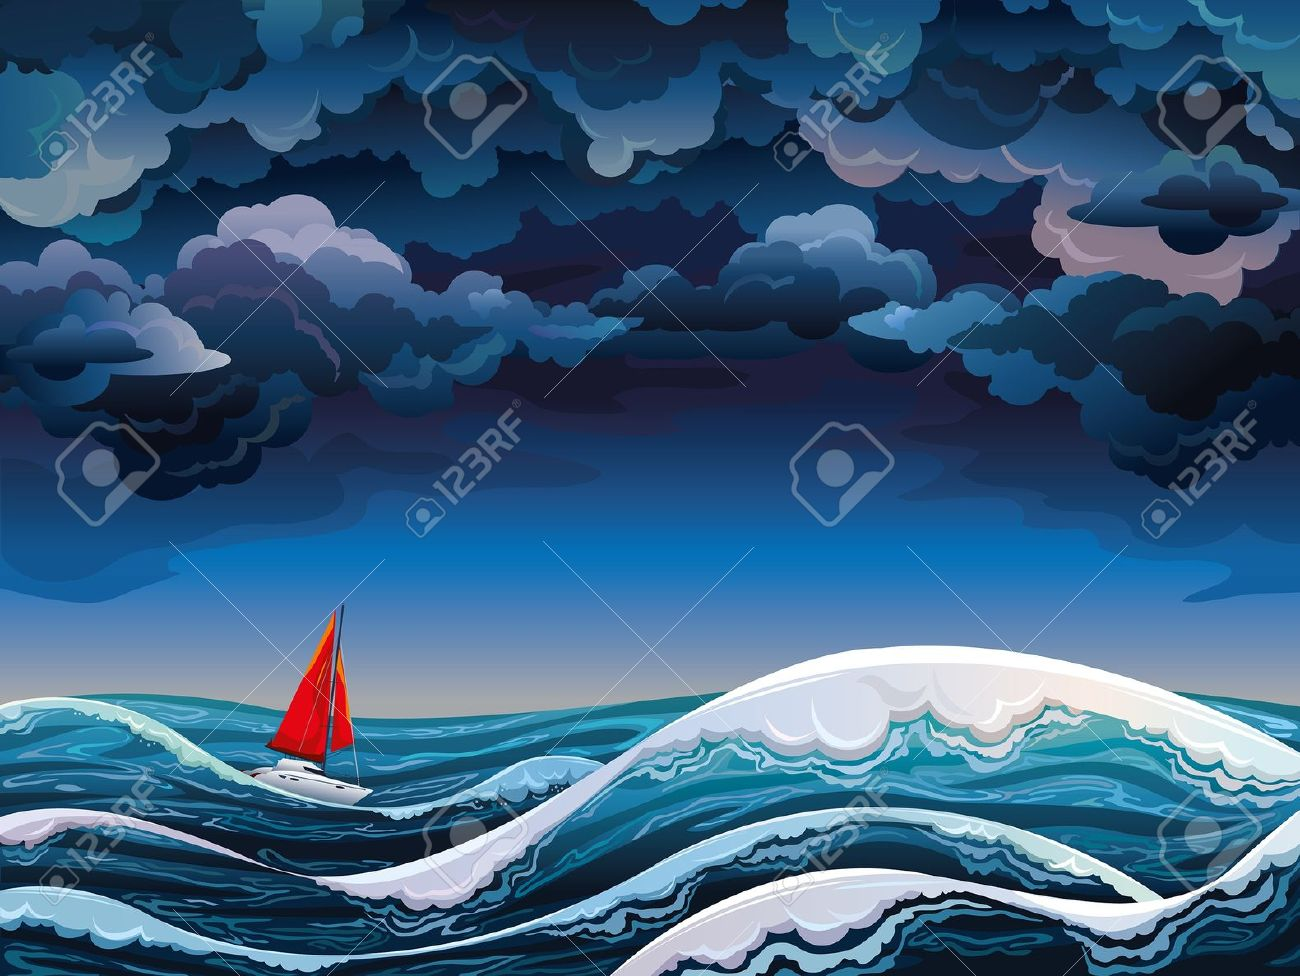 stormy sea clipart clipground